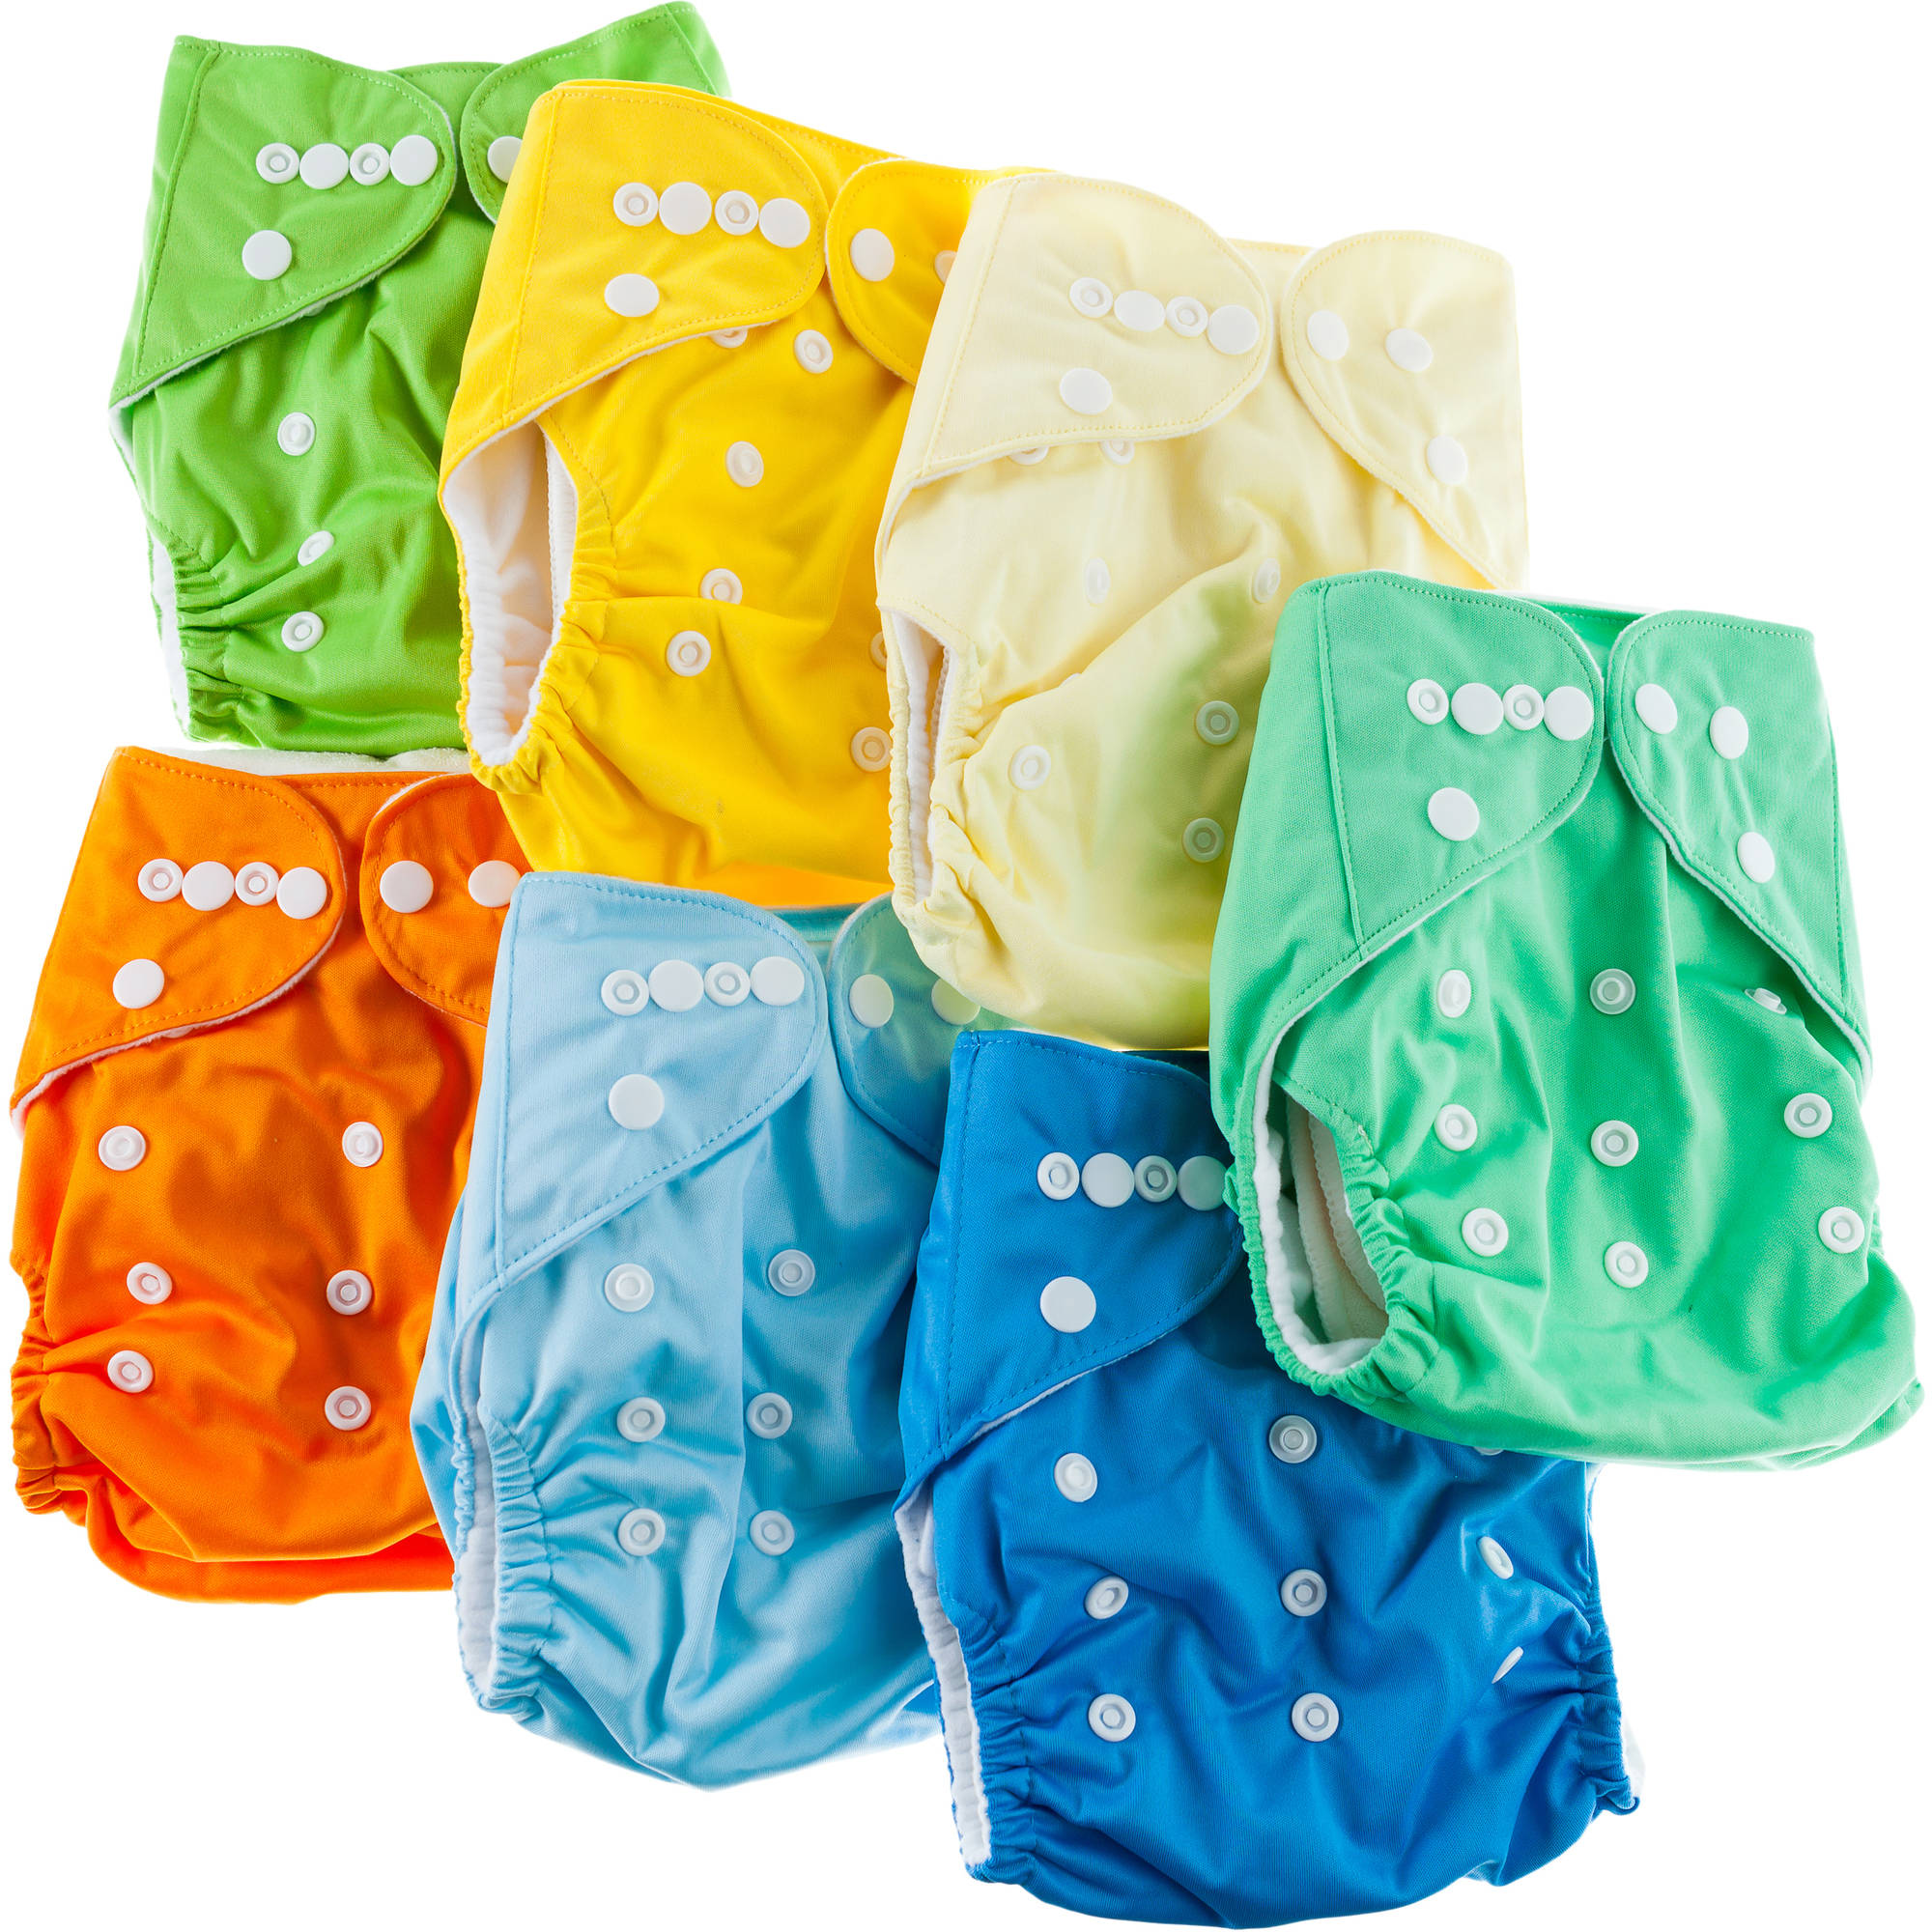 Adovely Cloth Diaper 15-Piece Gift Set (All in One)